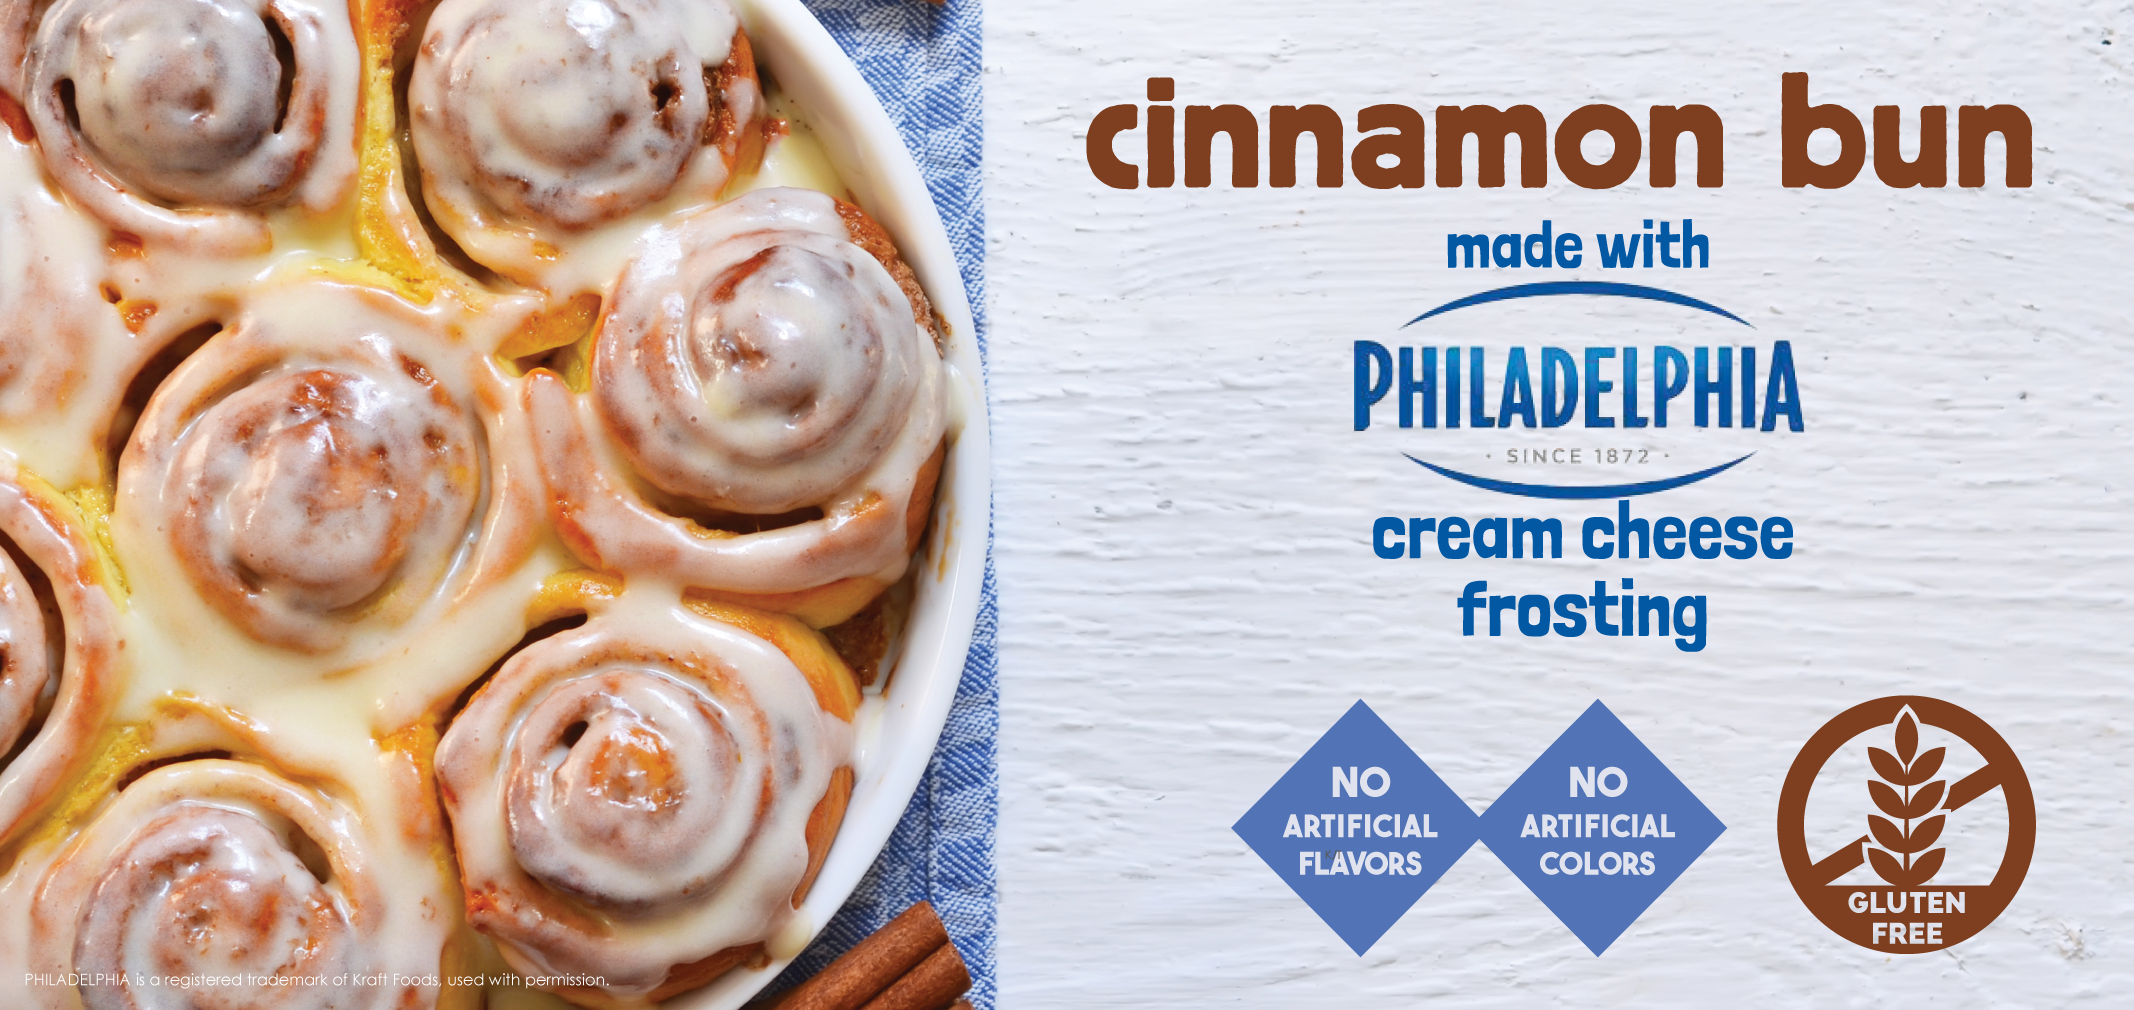 Cinnamon Bun made with Philadelphia Cream Cheese Frosting label image